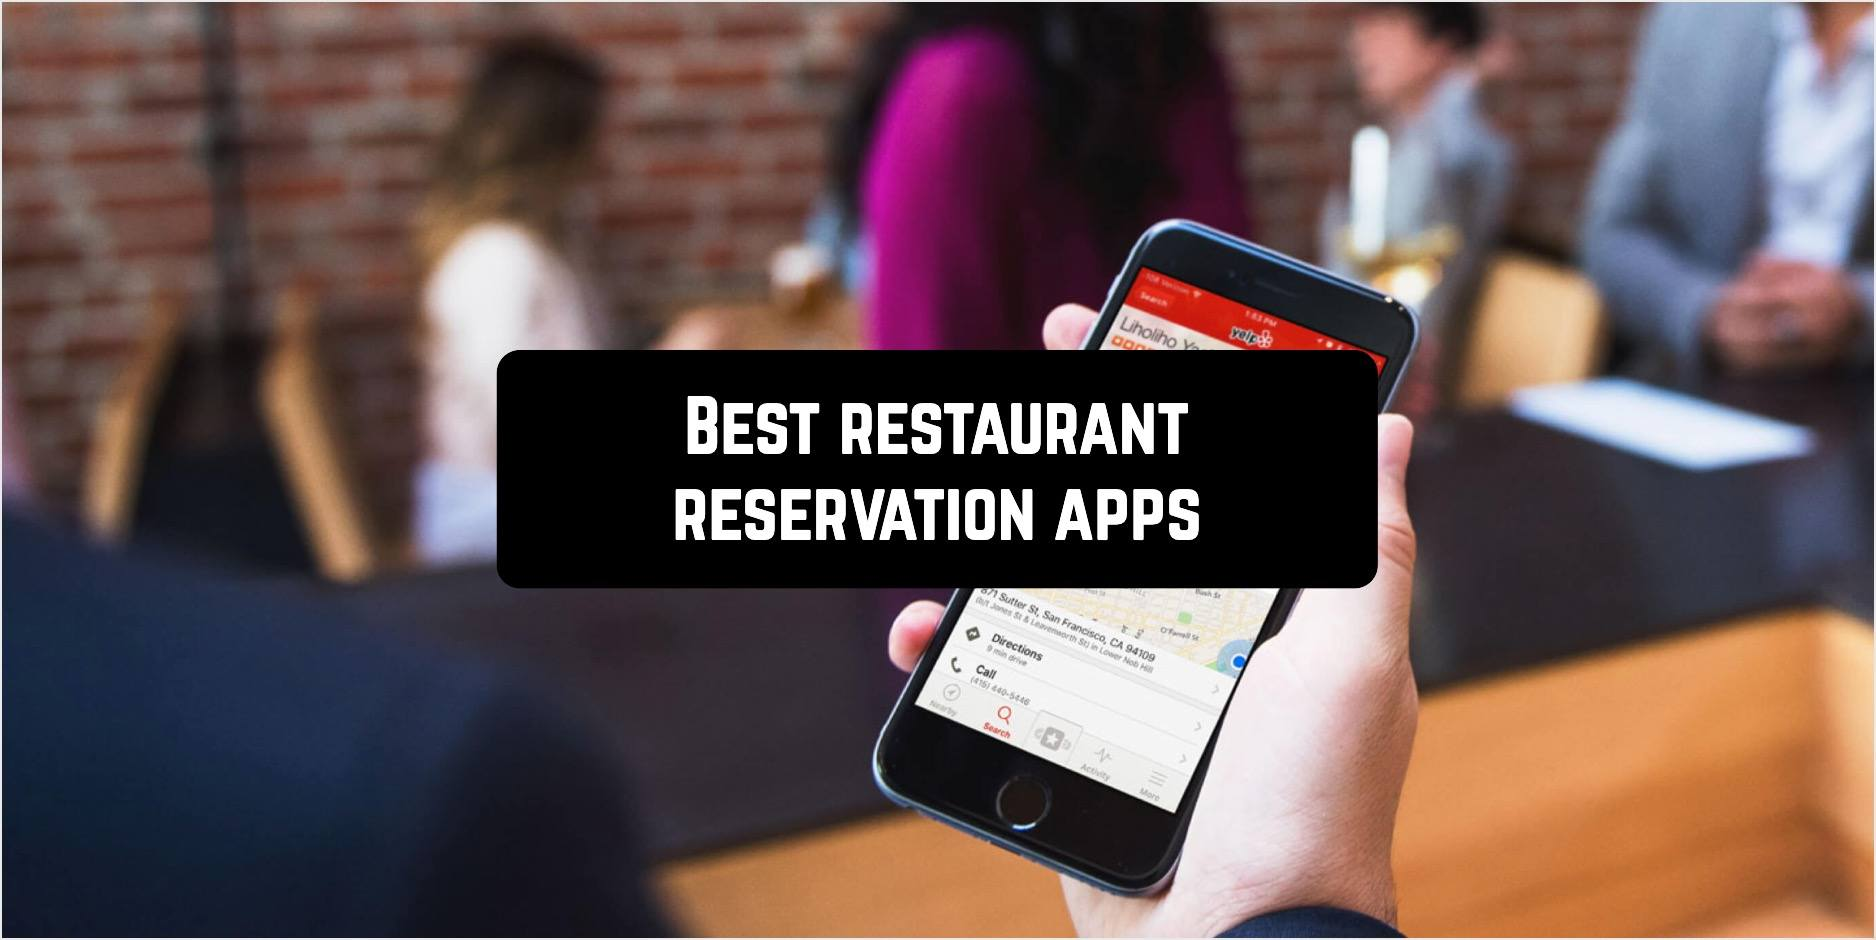 Best restaurant reservation apps